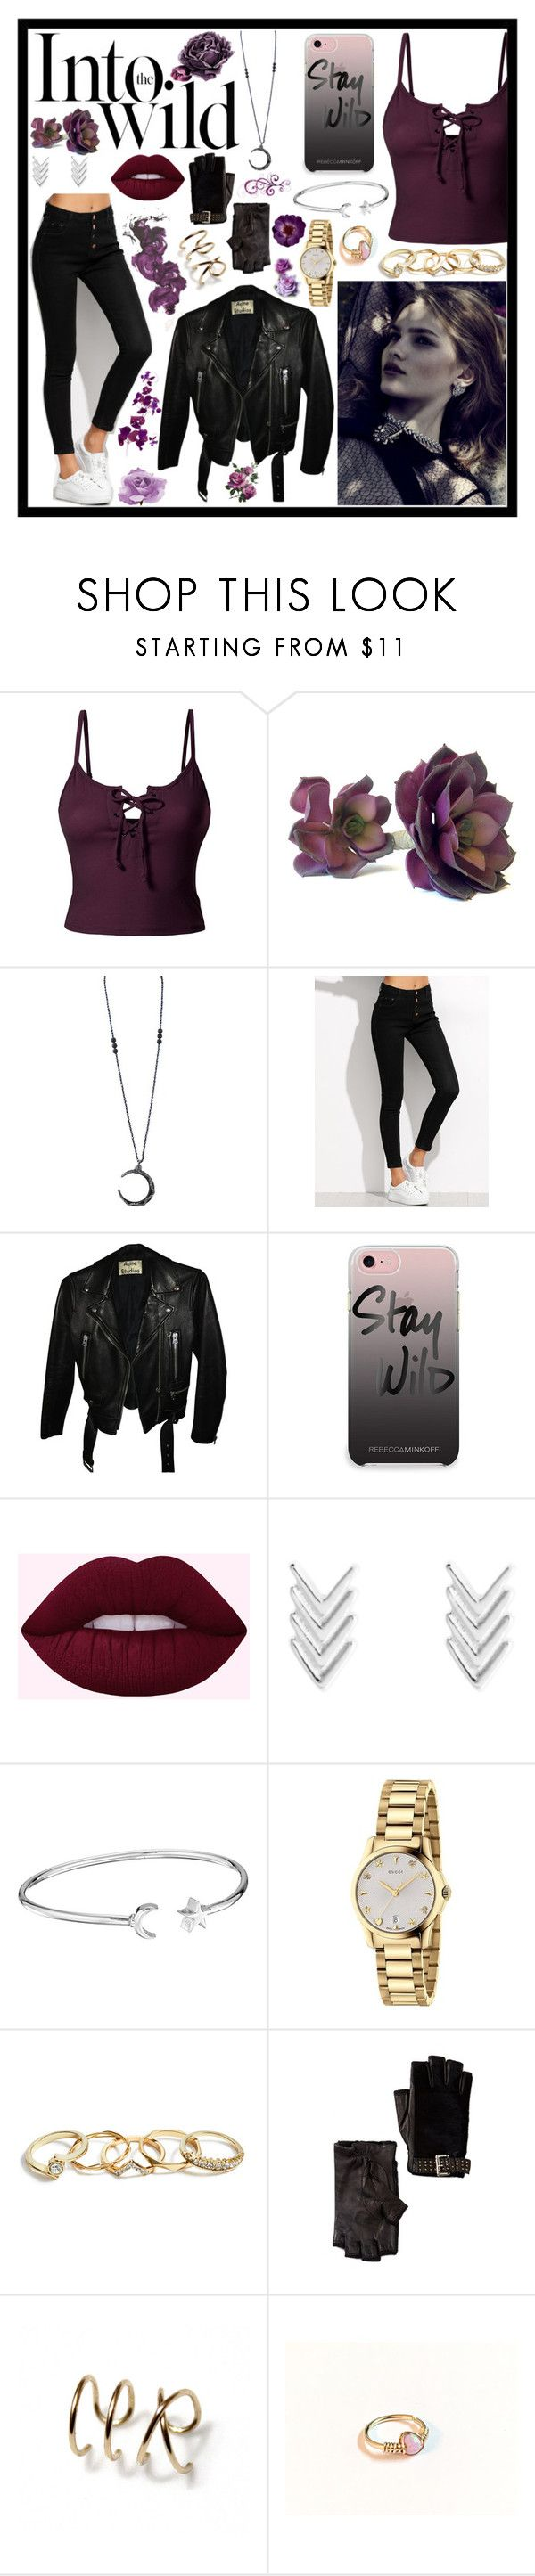 """""""INTO THE WILD"""" by magicxx8 ❤ liked on Polyvore featuring LE3NO, Anja, Acne Studios, Rebecca Minkoff, Alex and Ani, Gucci, GUESS, Romeo + Juliet Couture and MICHAEL Michael Kors"""